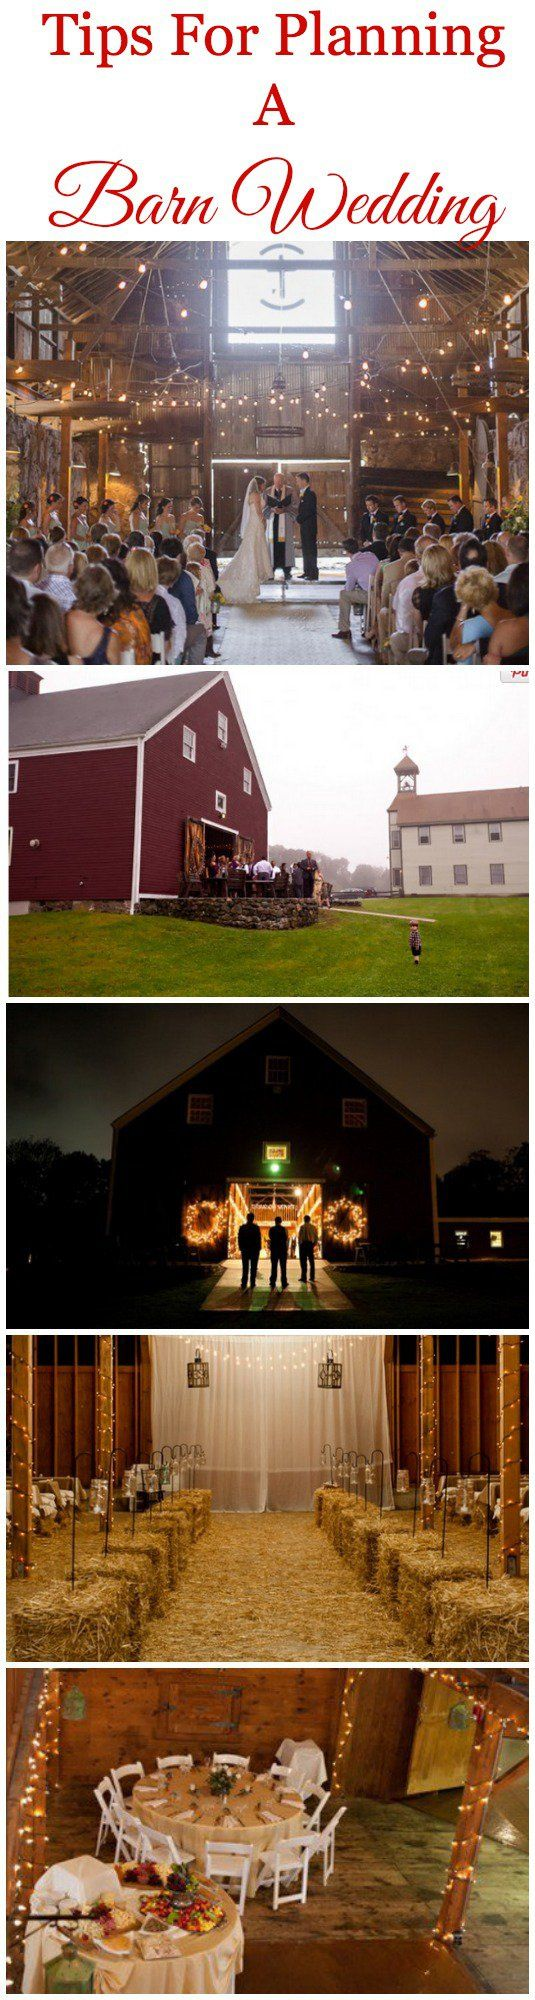 Tips For Planning A Barn Wedding